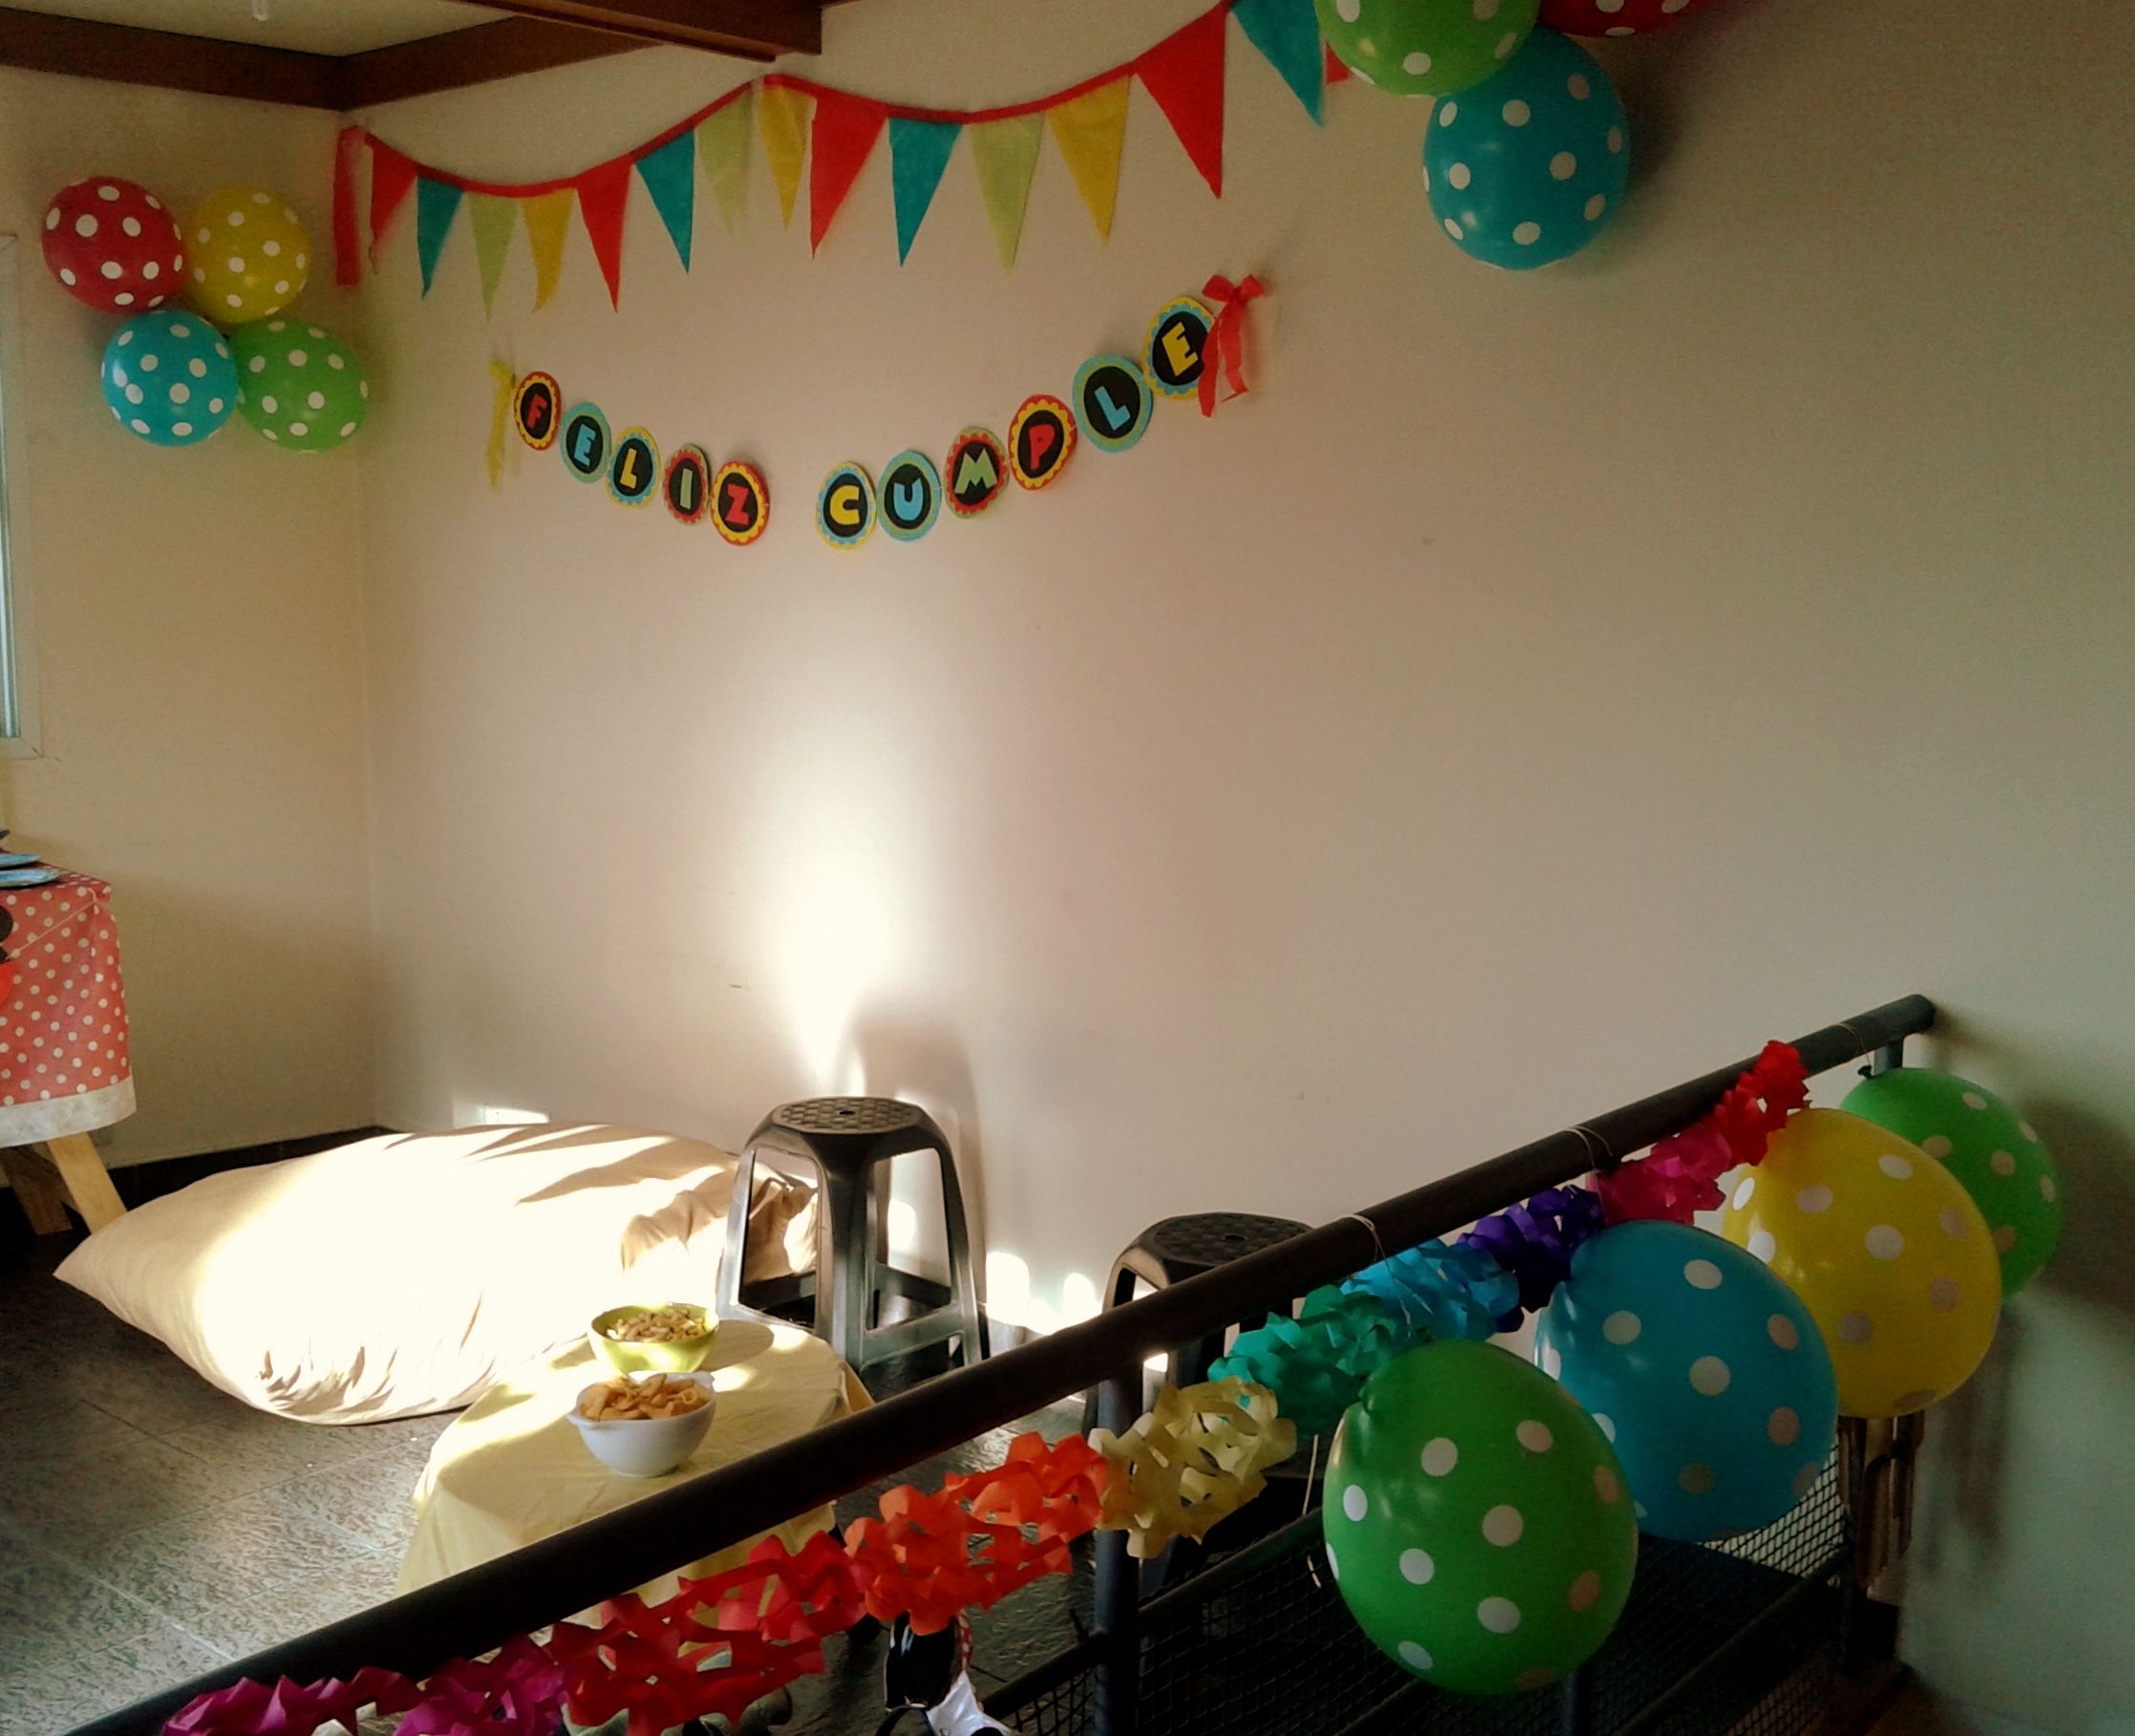 Deco mickey mouse clubhouse party decoraci n fiesta de for Decoracion la casa de mickey mouse